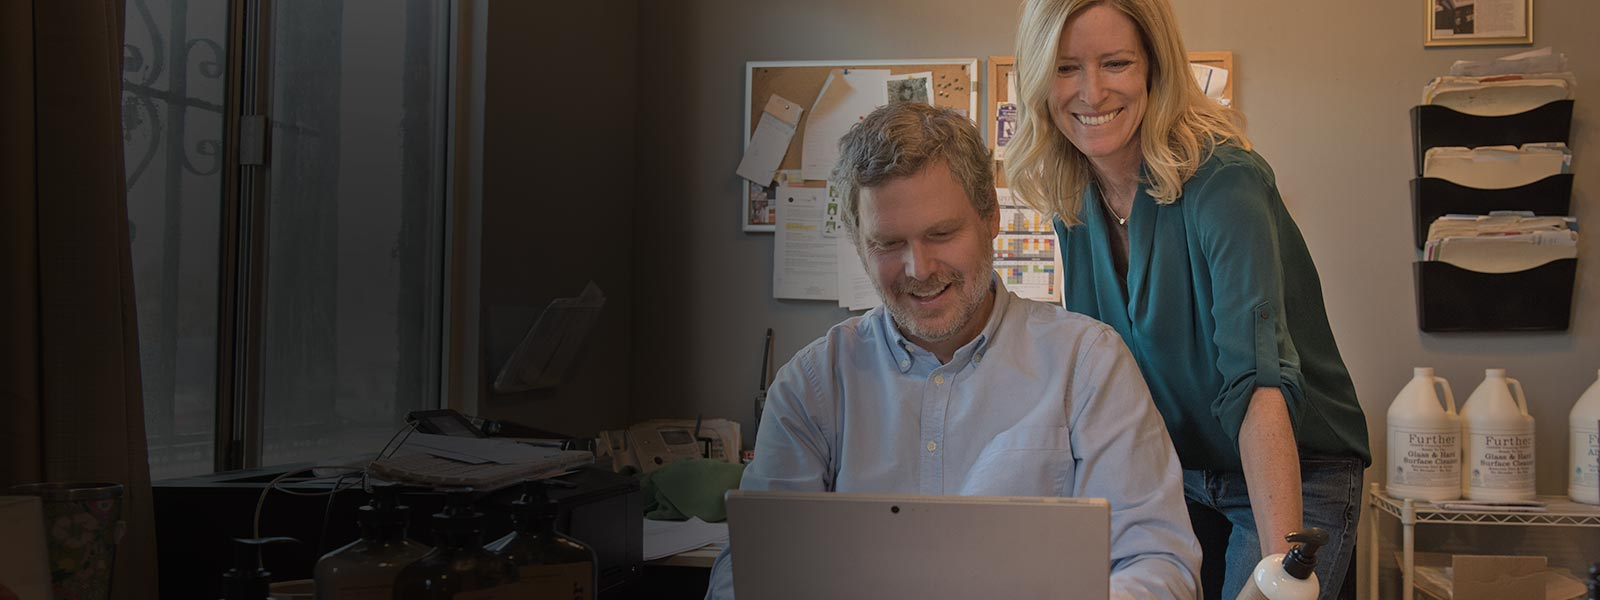 A smiling man and woman work on a PC